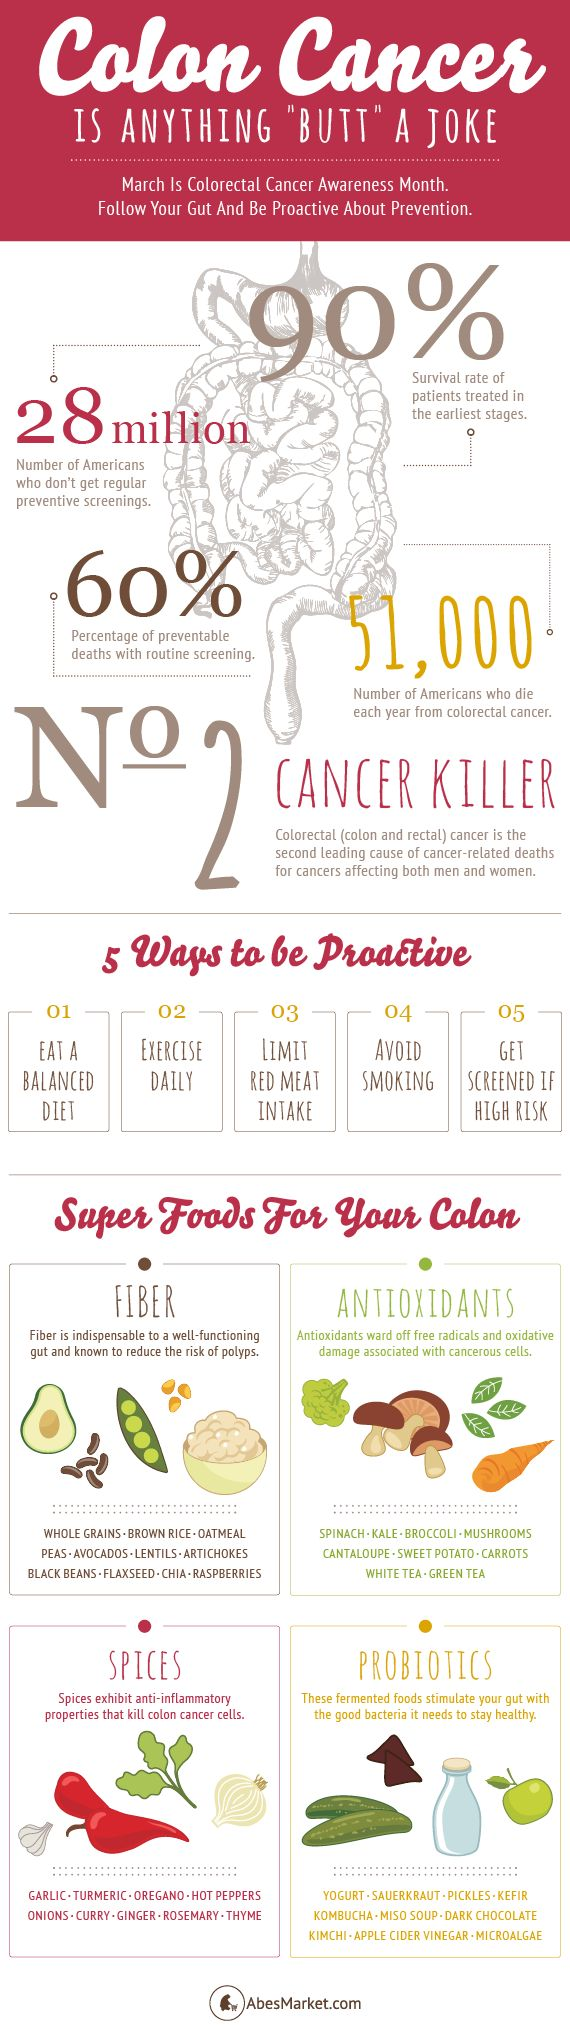 """4 Steps to Colon Cancer Prevention 1. Eat a diet rich in fruits, vegetables and whole grains 2. Limit red meat intake 3. Exercise daily 4. Avoid smoking Want to help your loved ones in the at-risk age range? Remind them that getting screened is definitely anything """"butt"""" optional.   Natural relief from constipation -Guaranteed! - http://ConstipationRelief.KarenSargent.com/"""